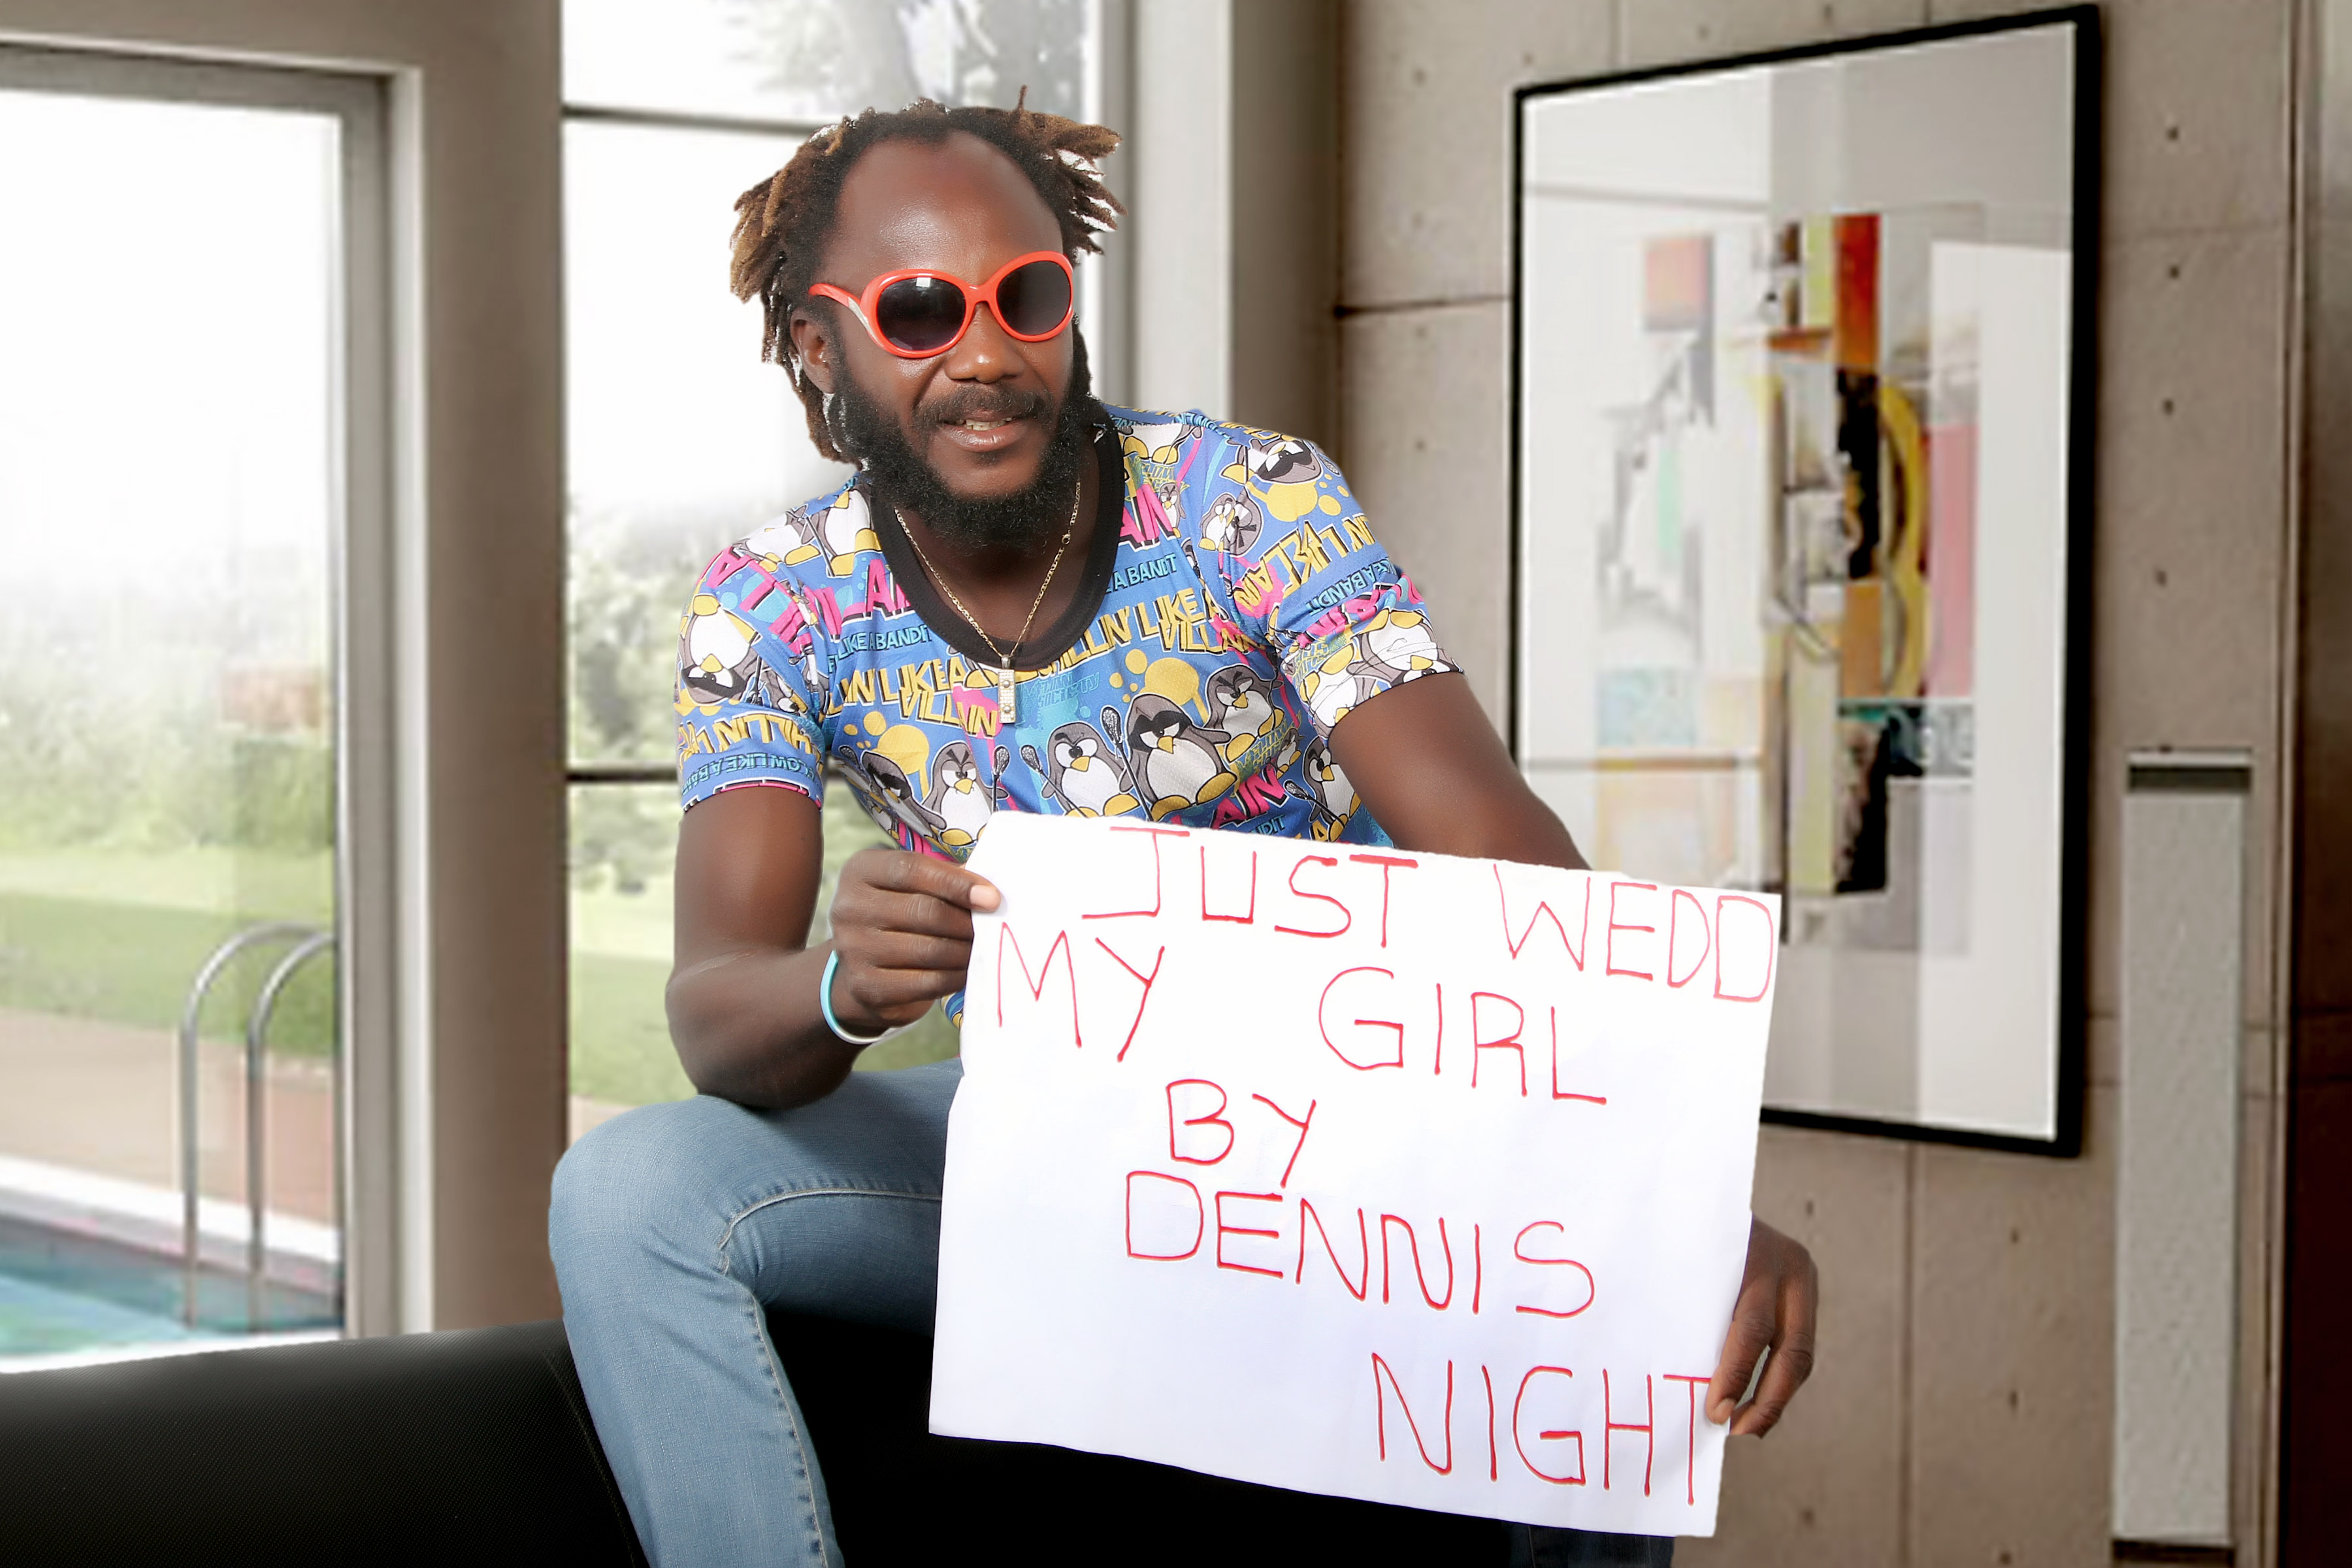 DENNIS NIGHT MUSIC WORLD – just wedd my girl